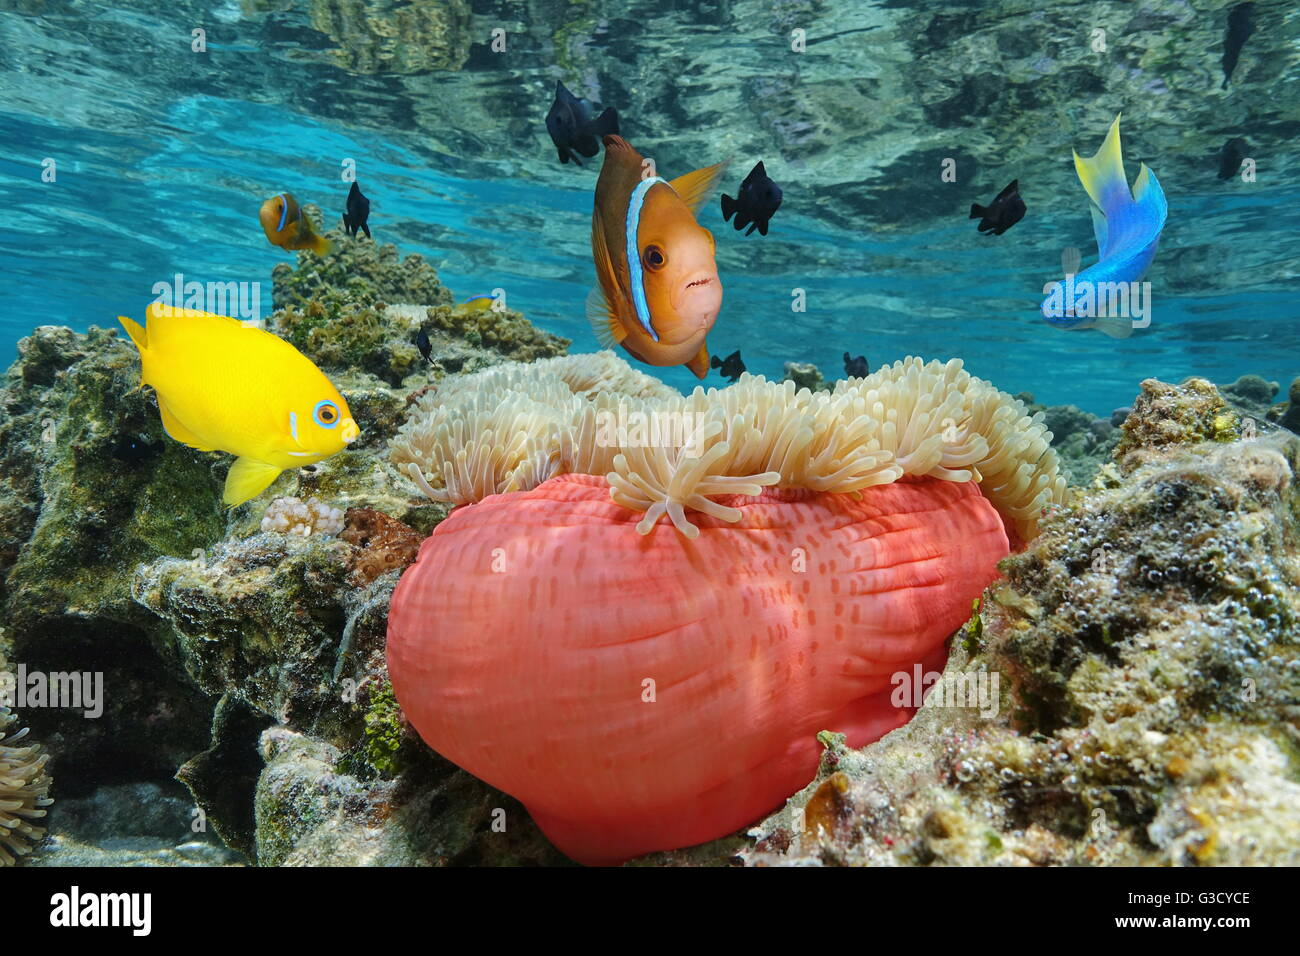 Colorful tropical fish with a Magnificent sea anemone in shallow ...